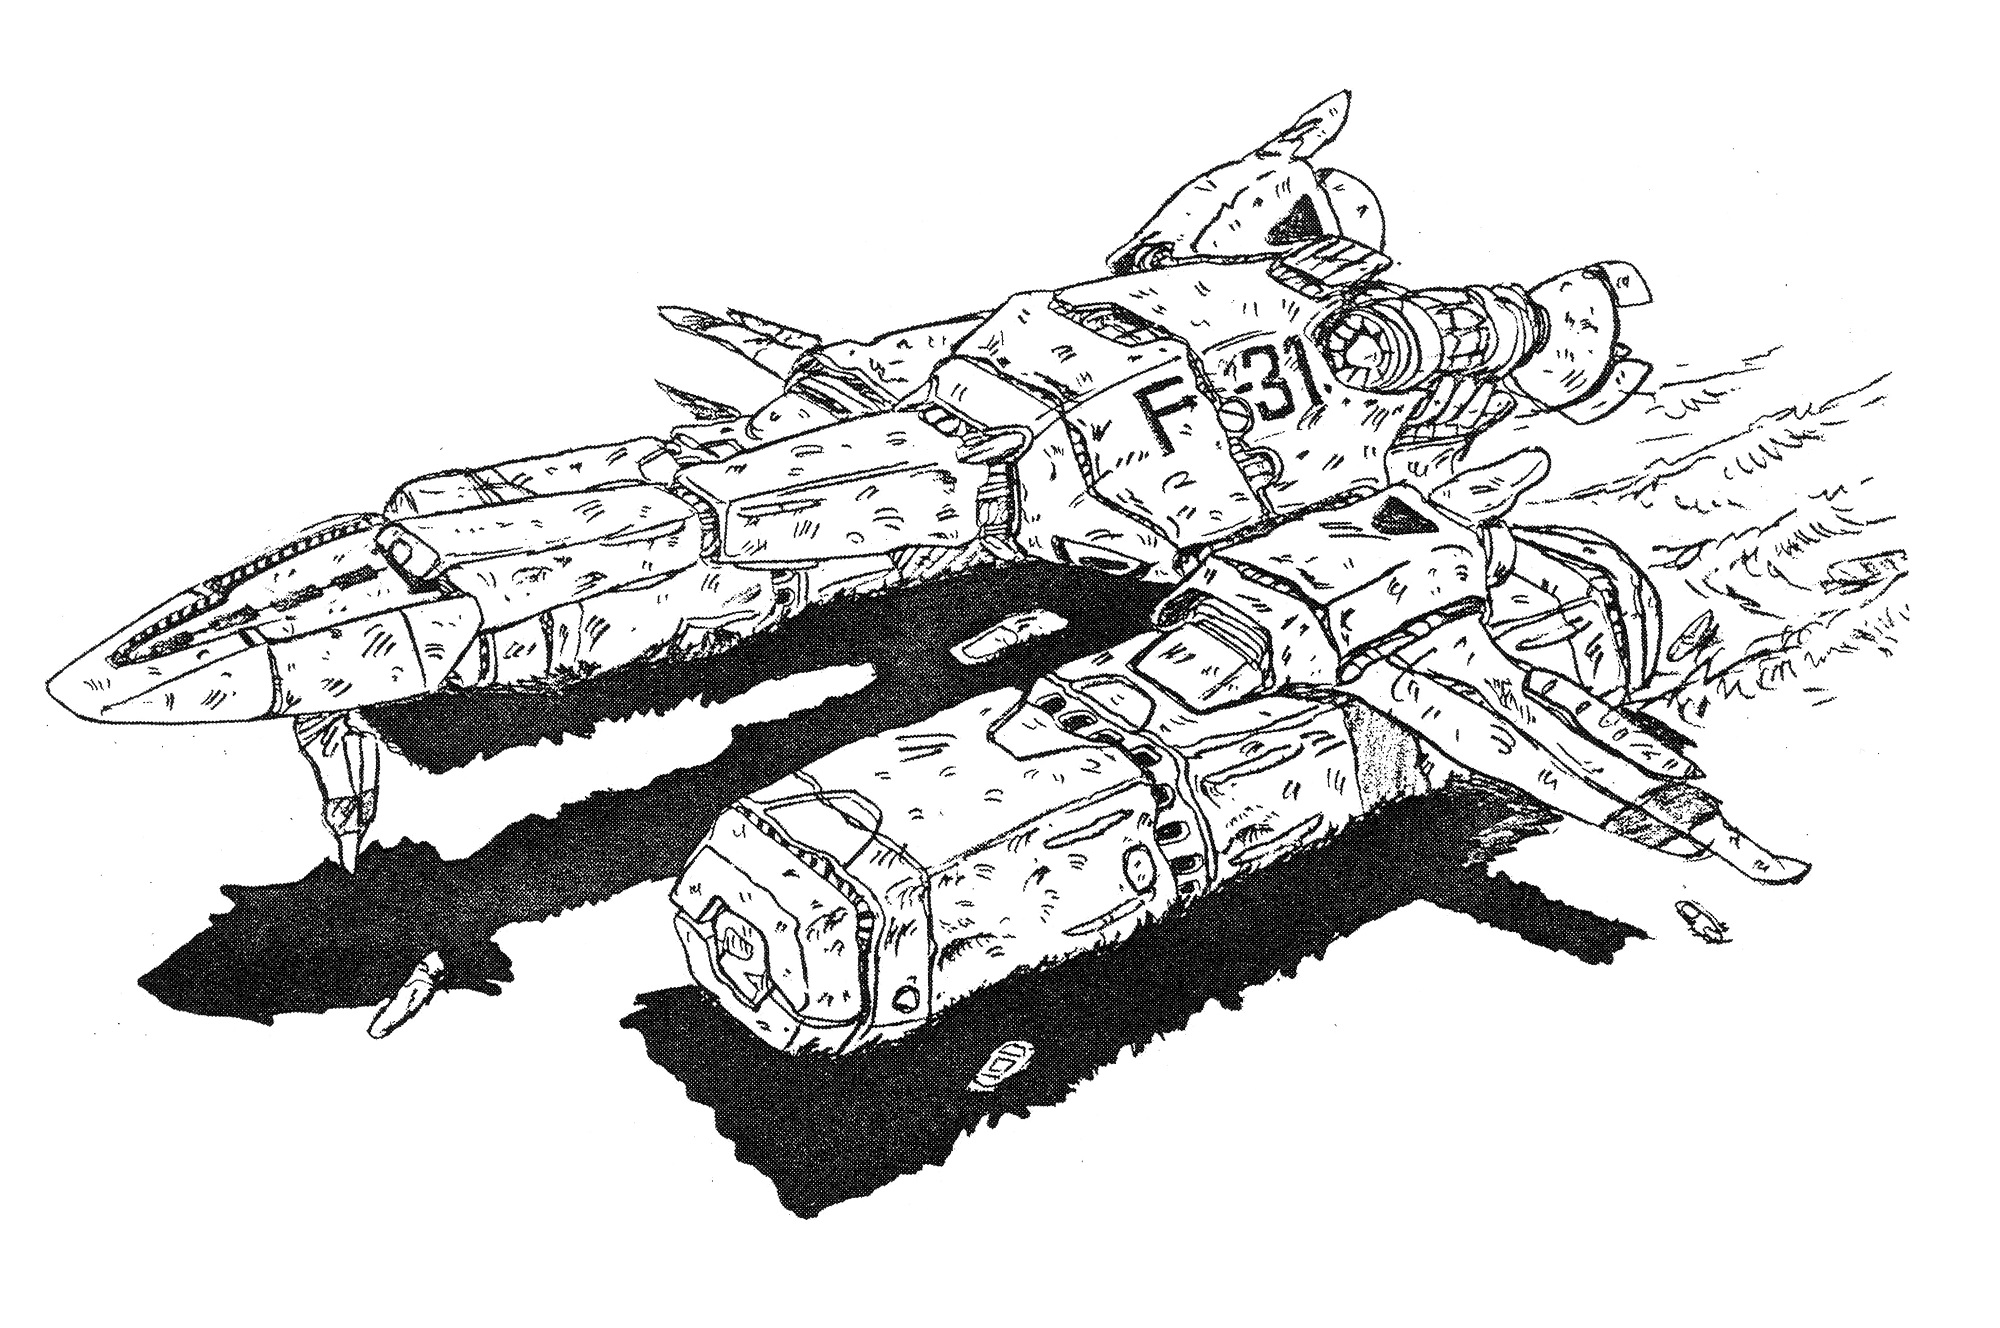 lca-12-horizont-cargo-dropship-aerospacecraft-wreck-1